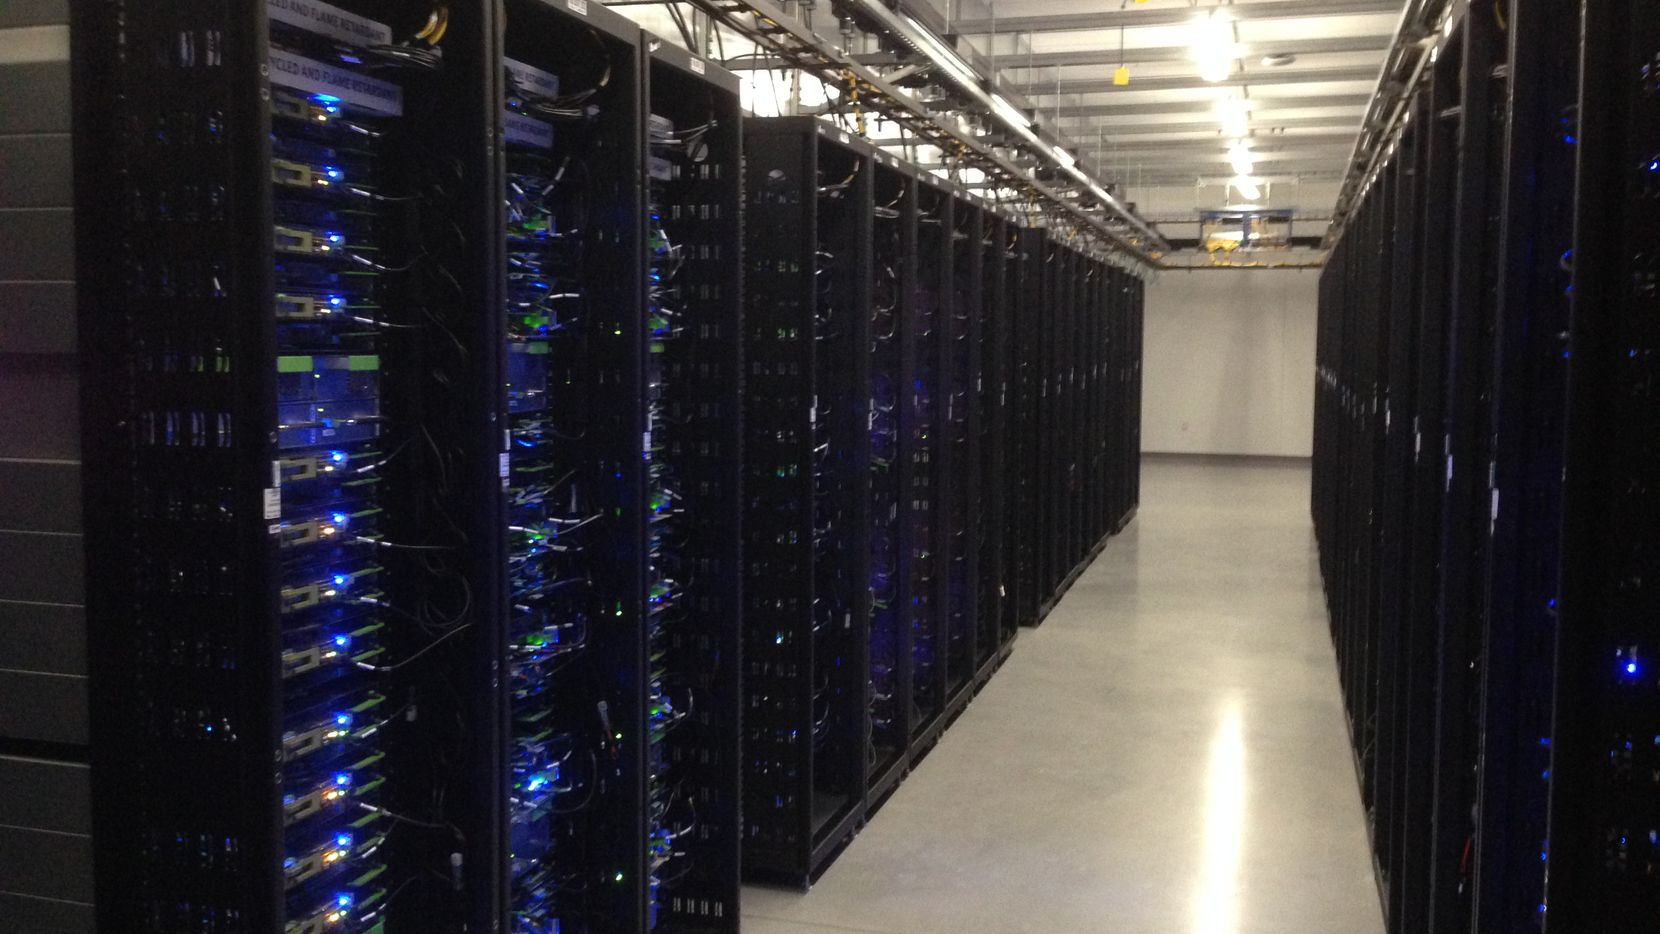 Digital Realty is expanding its new Garland data center with to 1.4 million square feet.